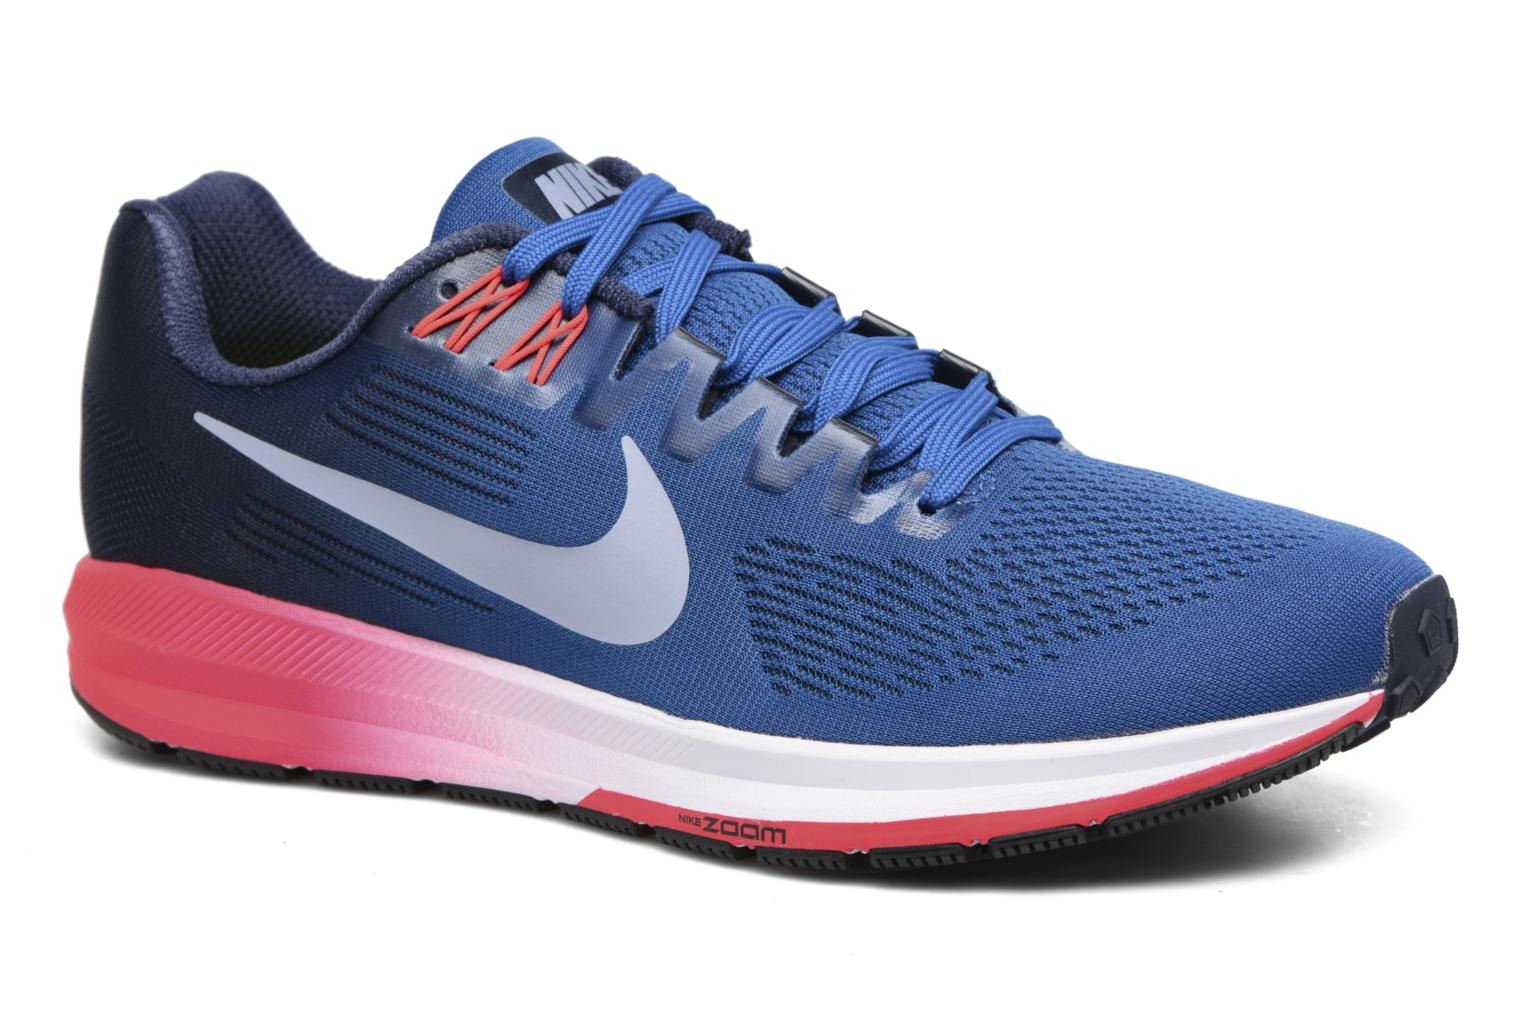 Nike Nike Chaussures Air Zoom Structure 21 (Bleu) Chaussures Nike de sport chez b0e794